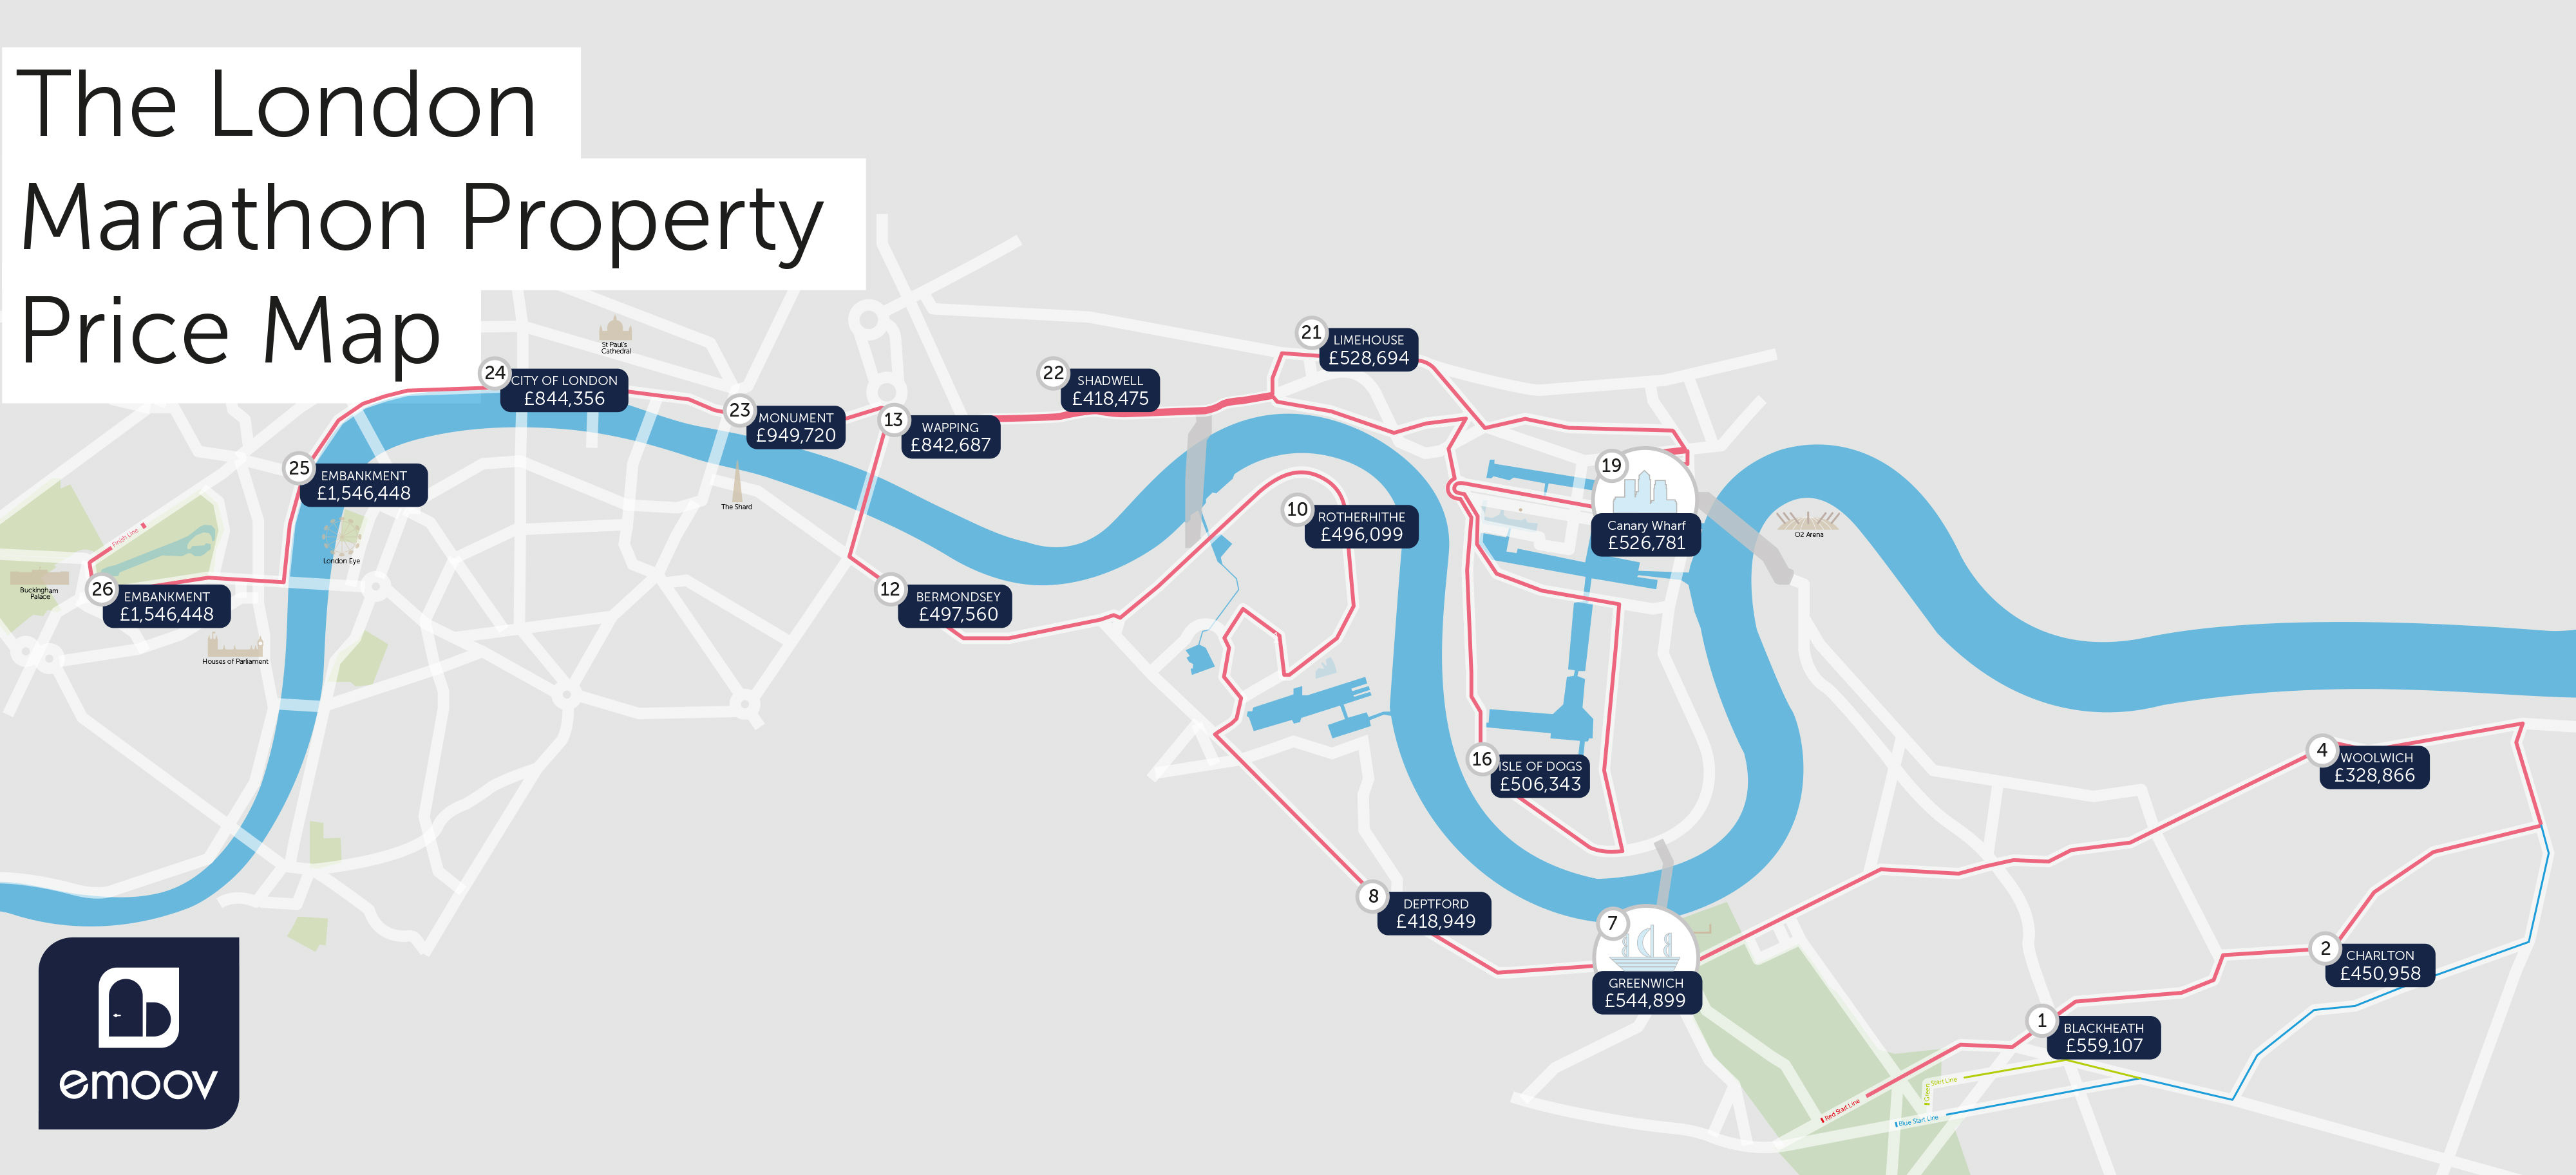 London Marathon Property Price Map